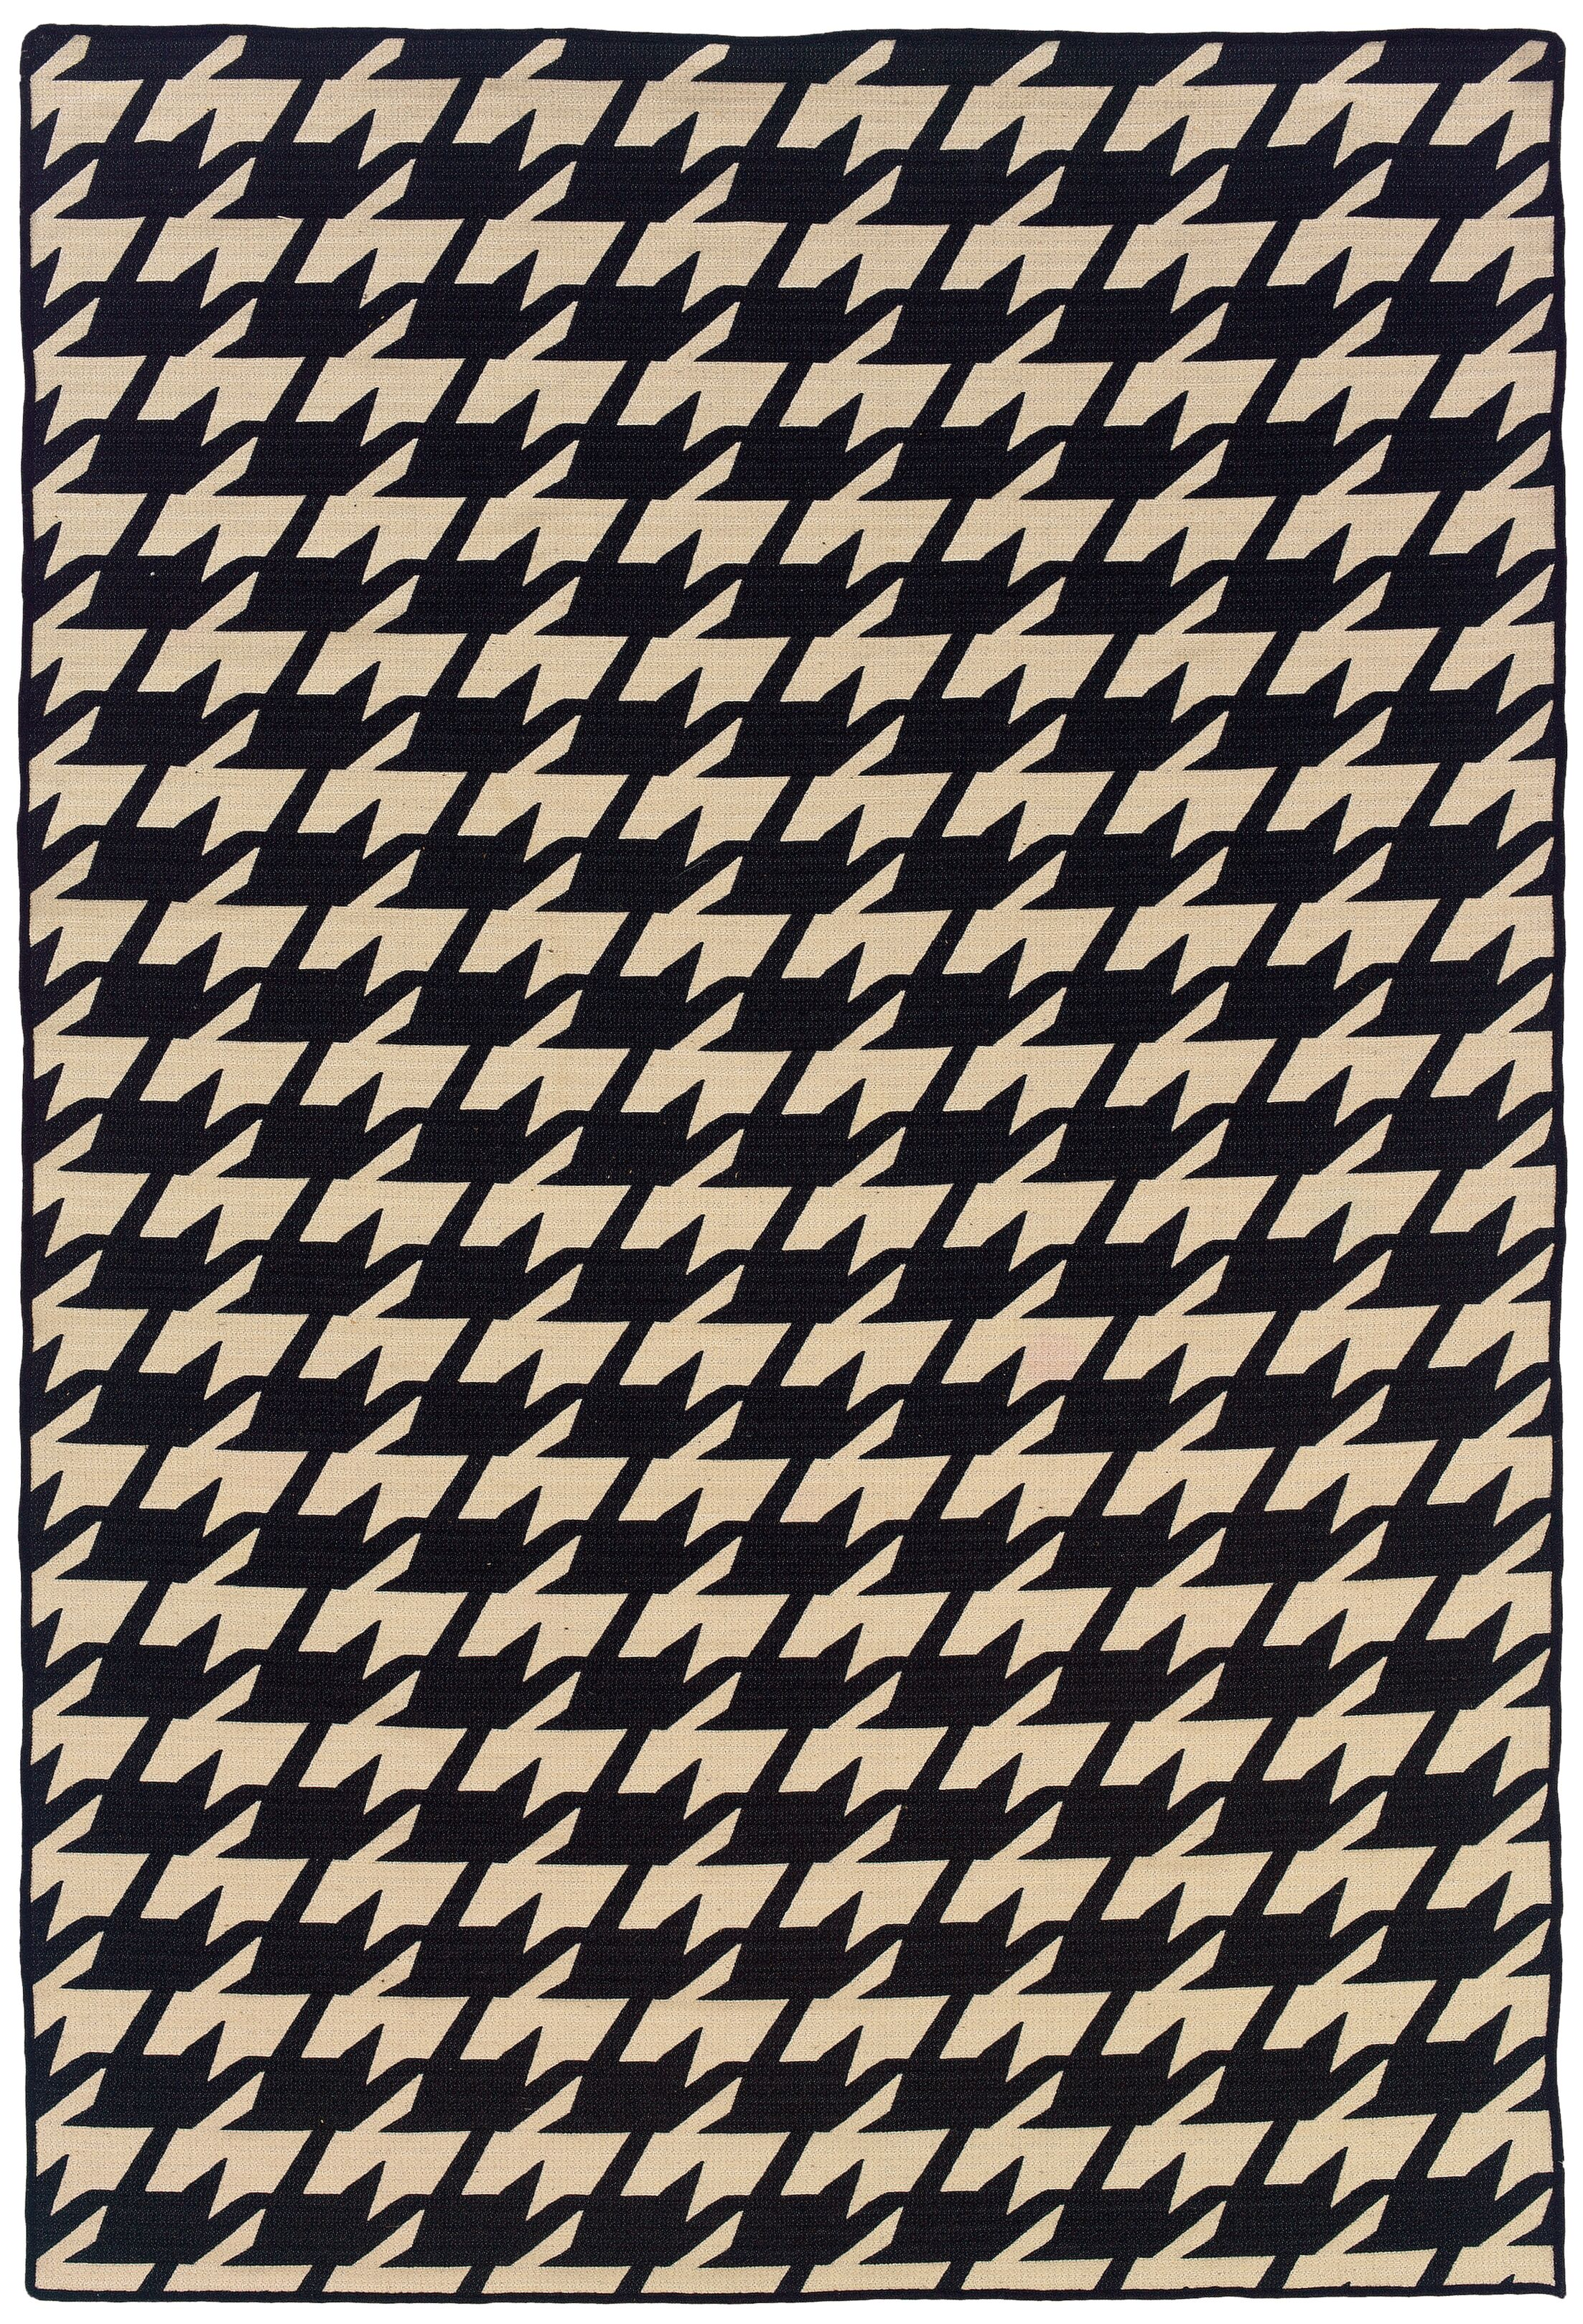 Destinee Traditional Hand-Tufted Black/Beige Area Rug Rug Size: 5' x 8'